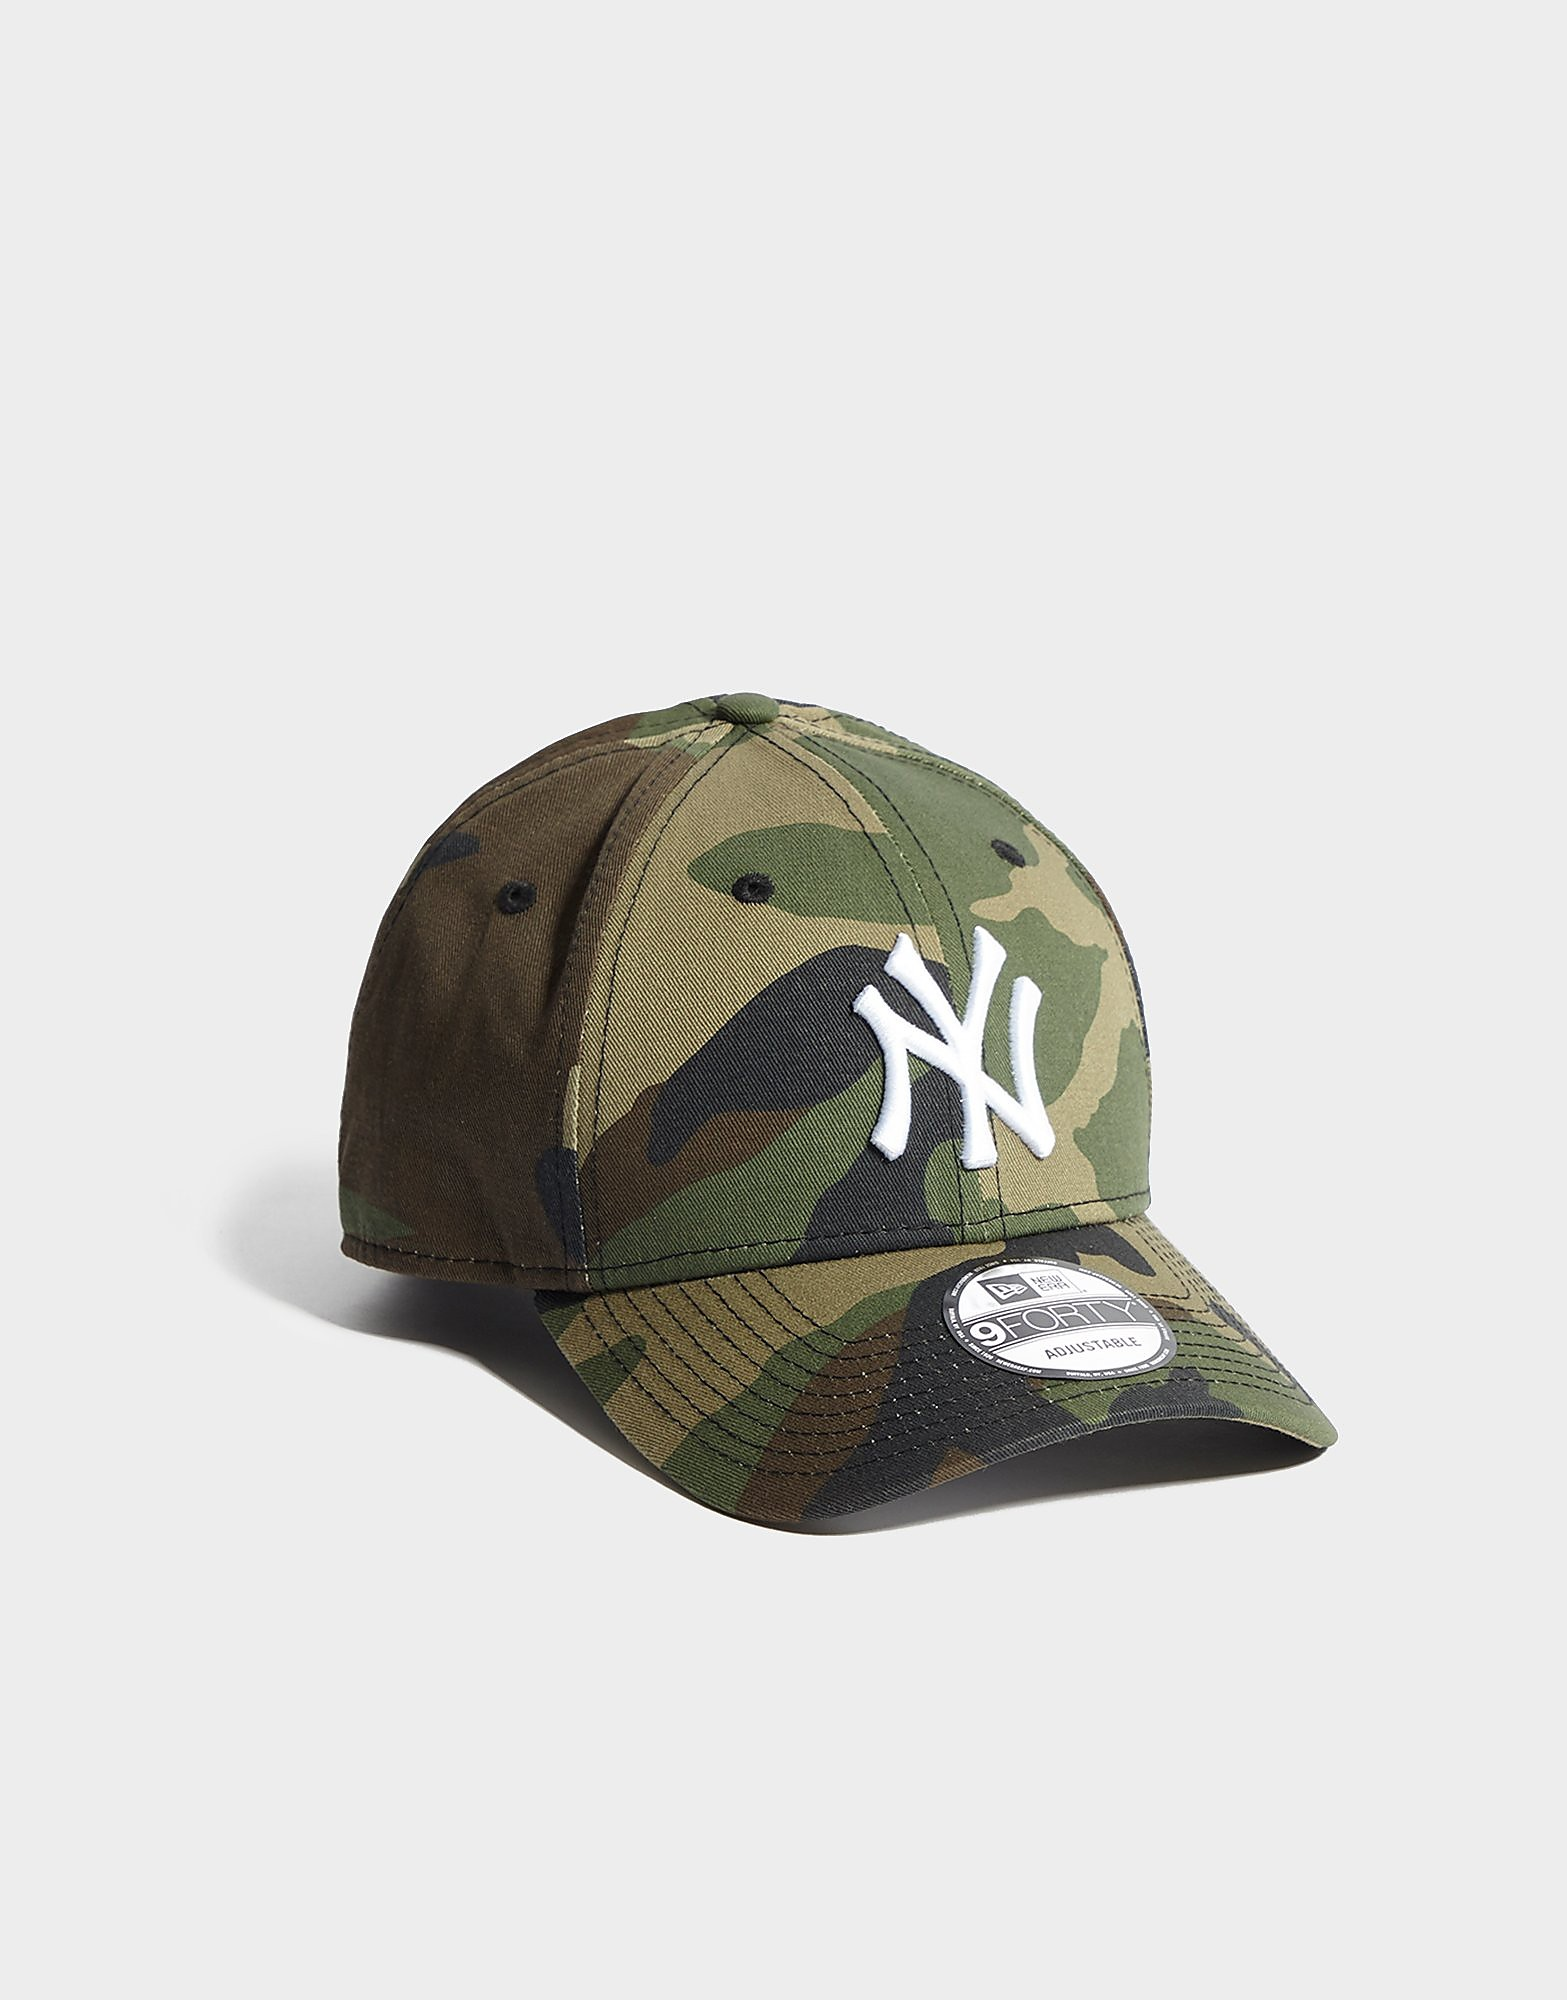 New Era MLB New York Yankees 9FORTY-kasket